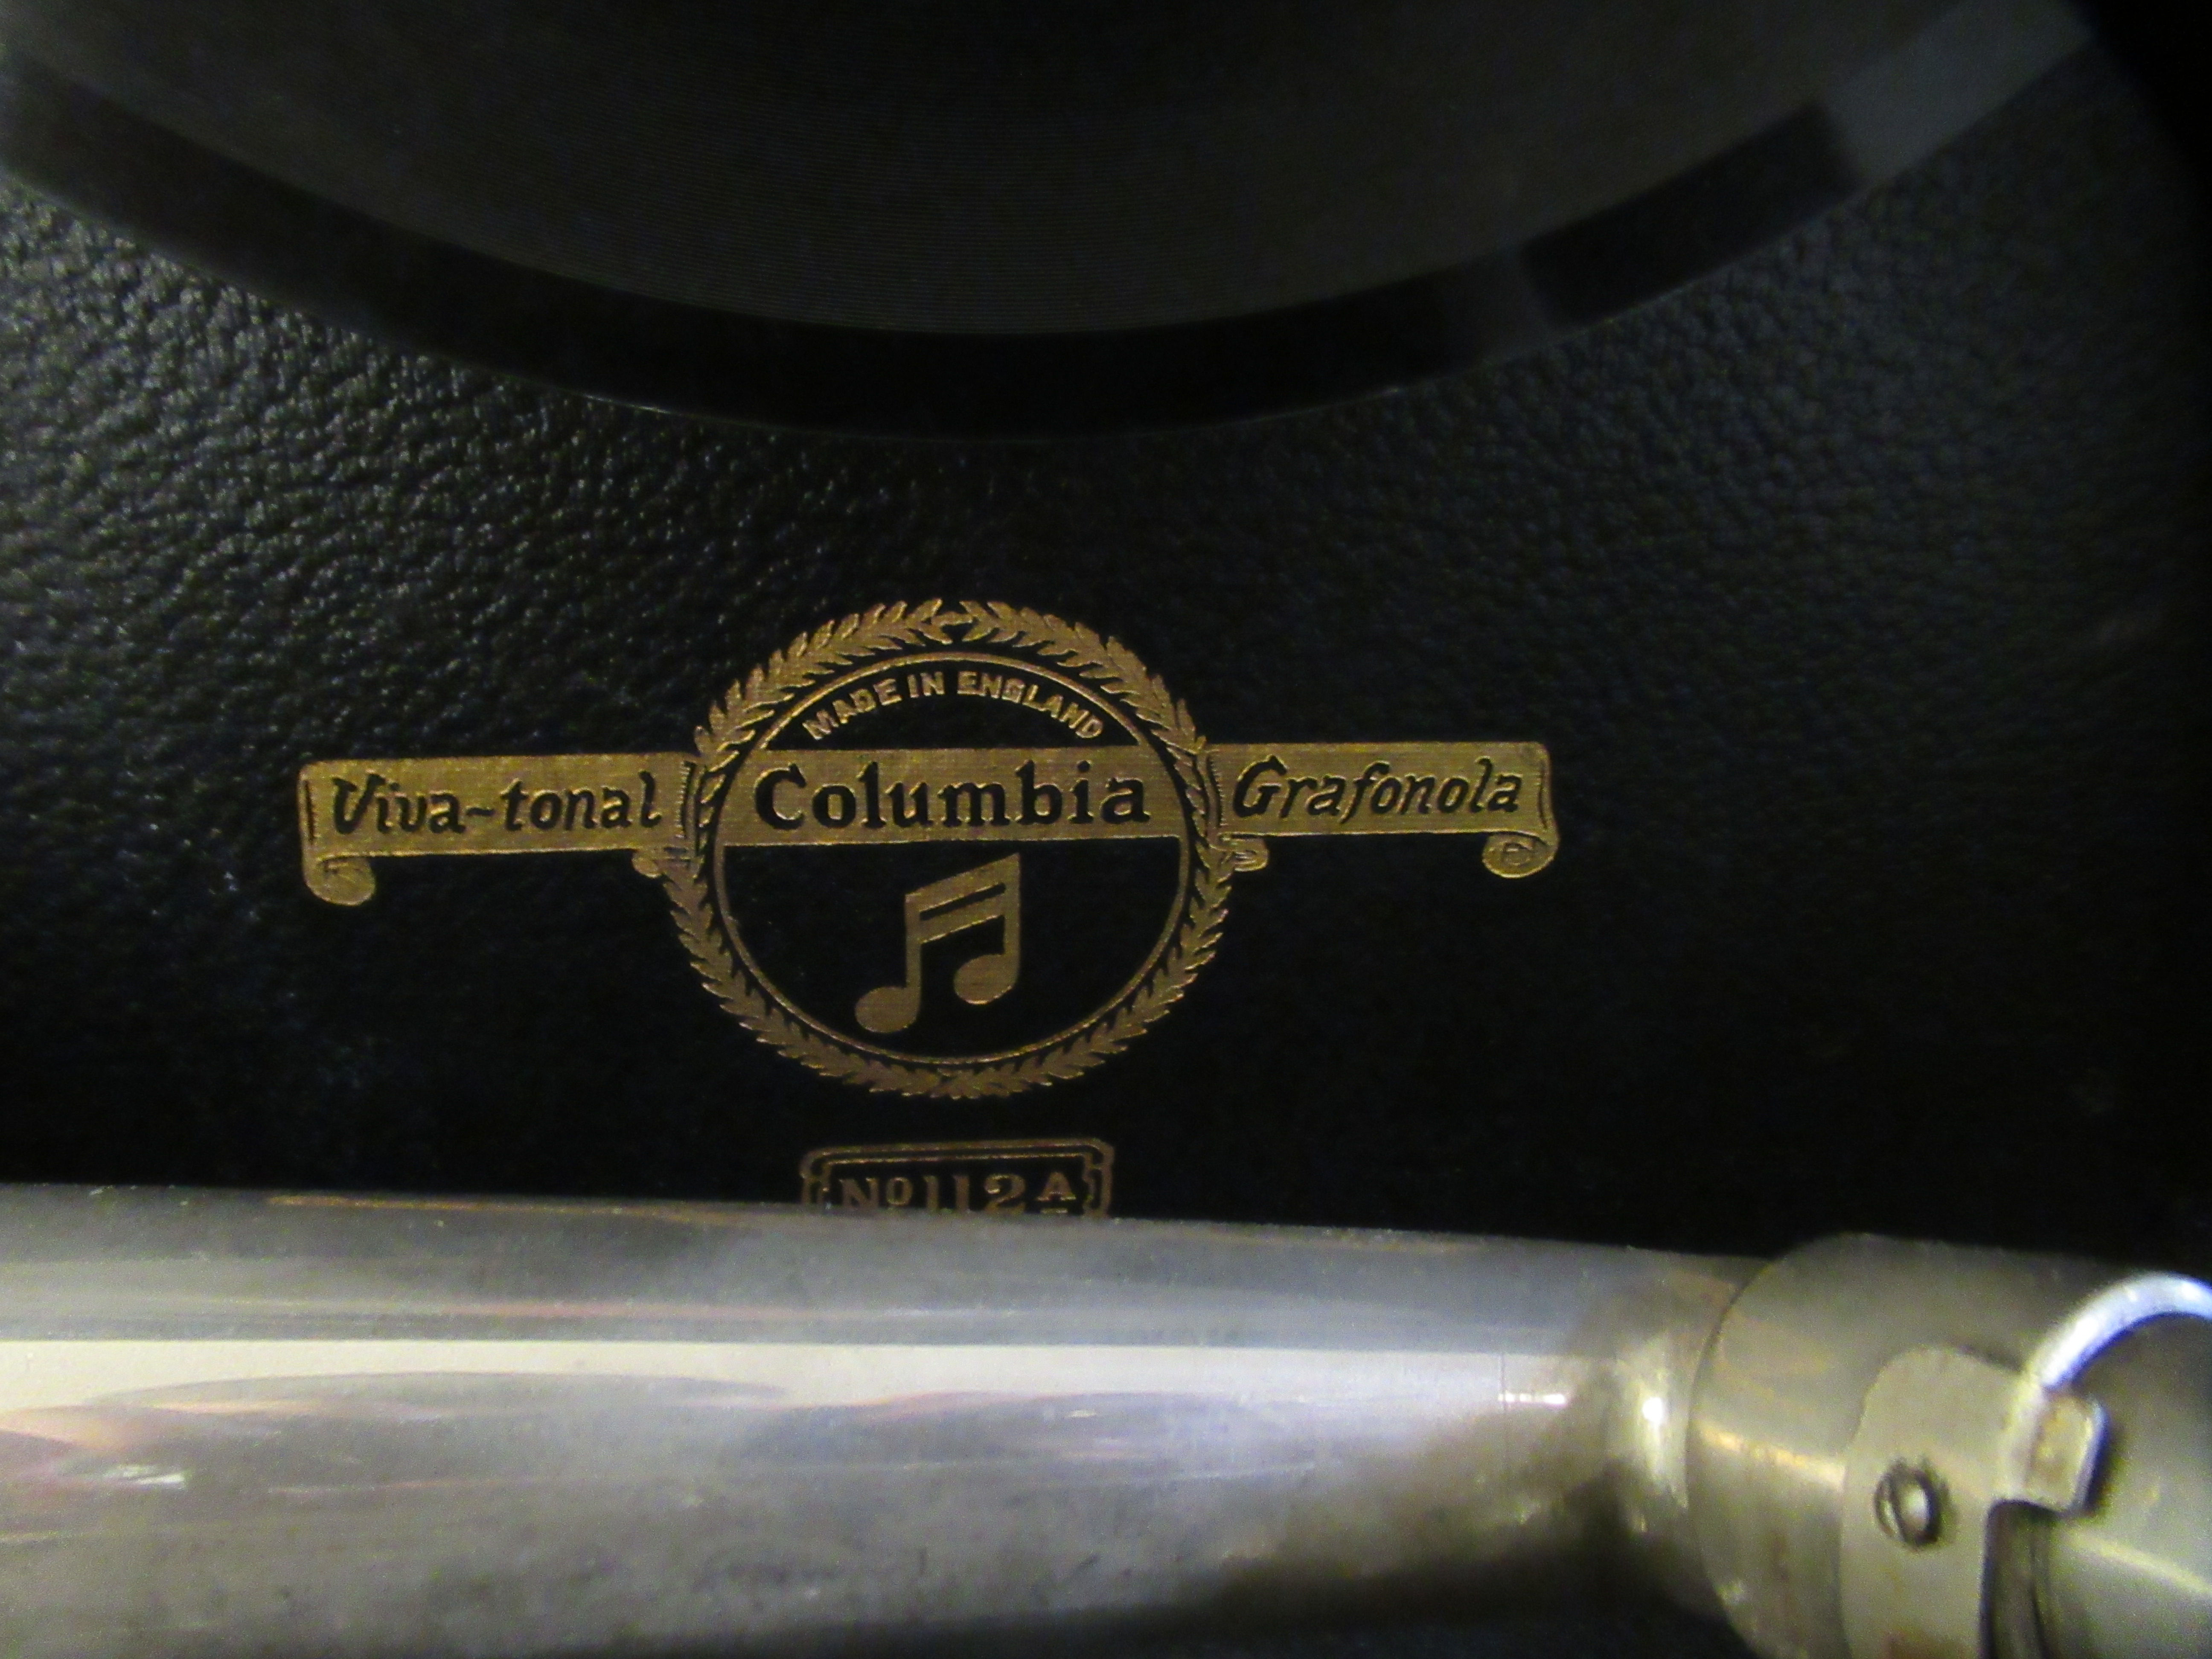 A 1930s Columbia portable gramophone with a folding handle, in a black fabric covered case - Image 2 of 5